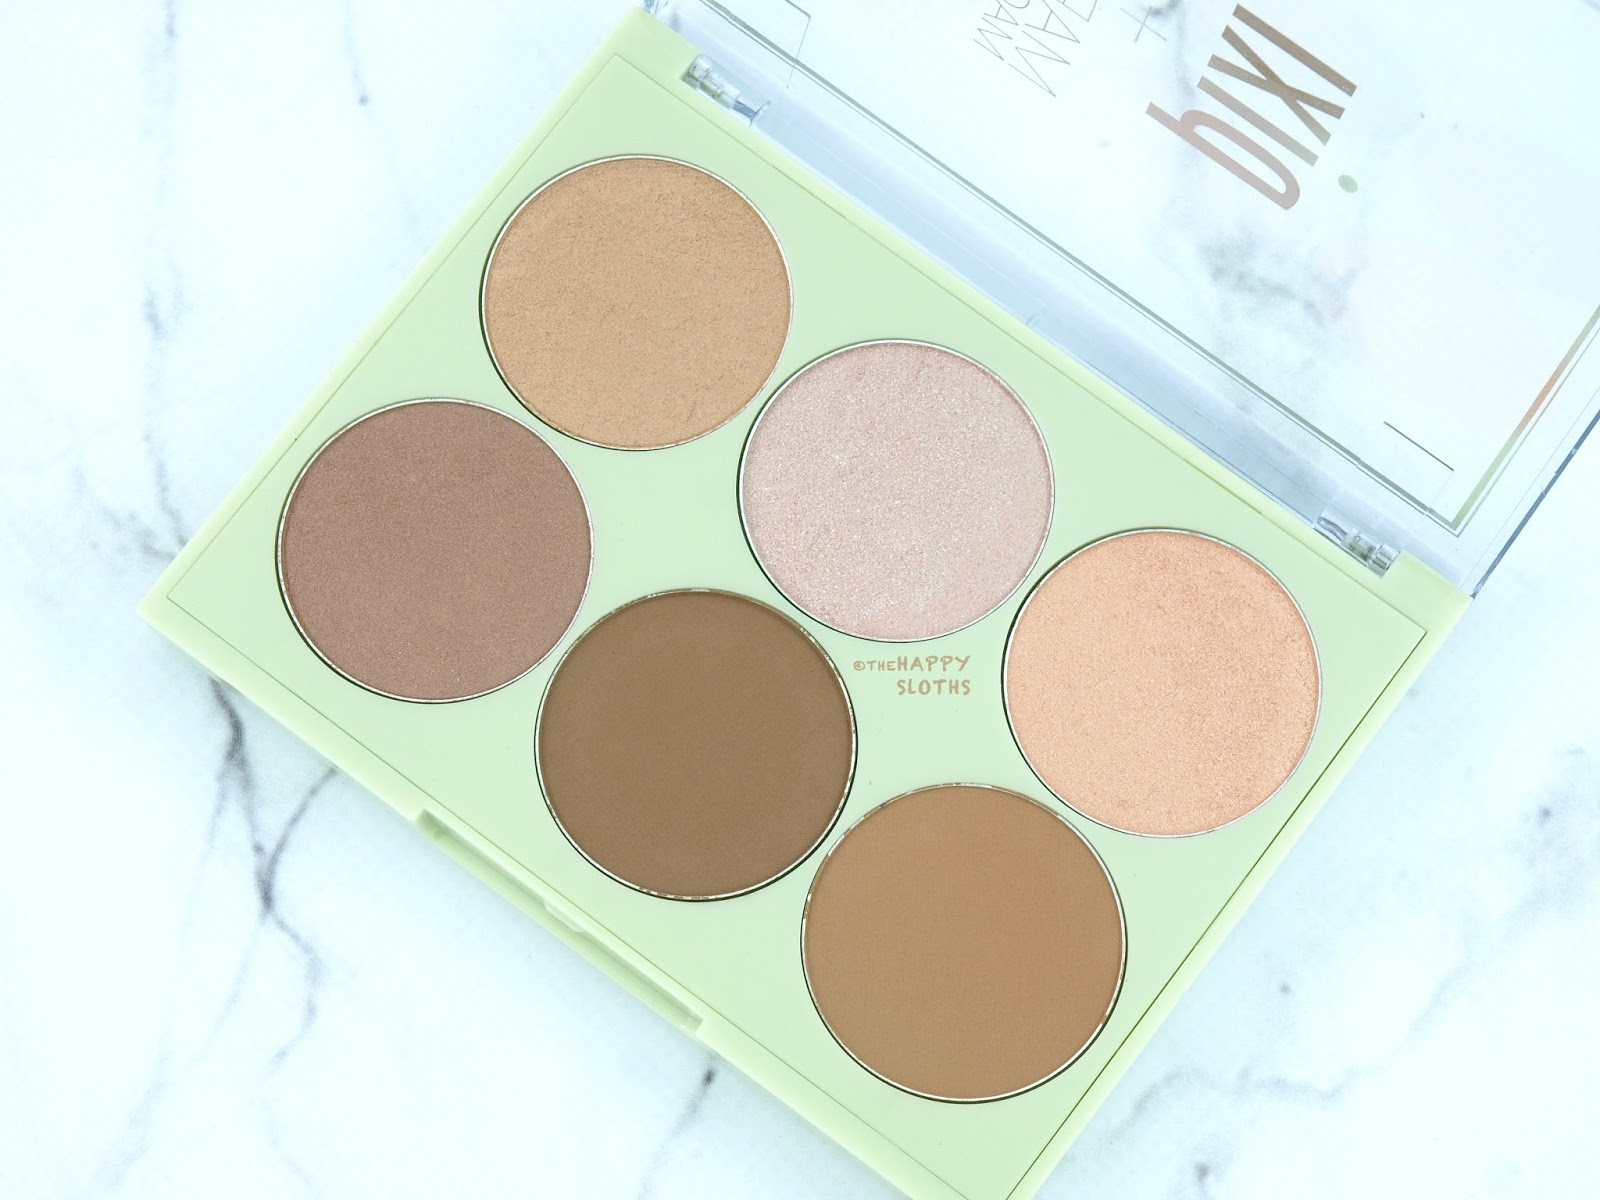 Pixi + Maryam Maquillage Strobe & Bronze Palettes: Review and Swatches